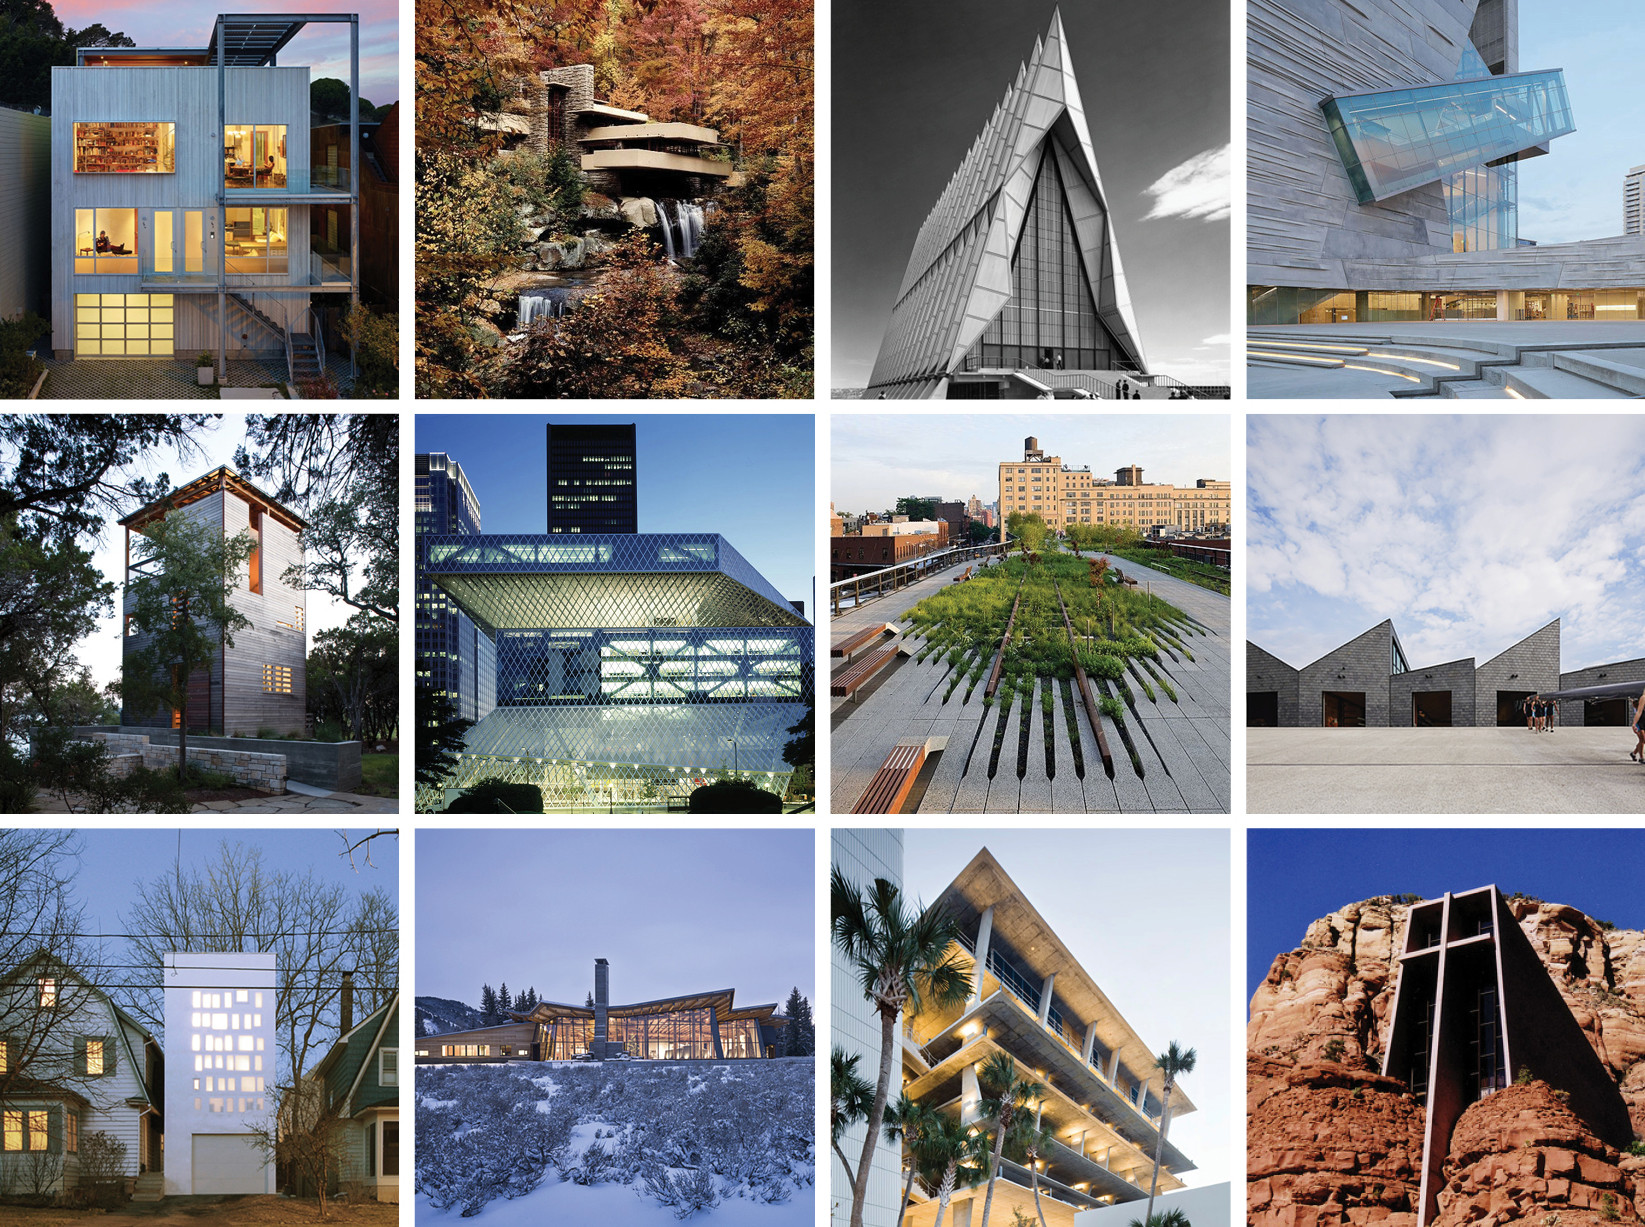 ArchDaily Editors Select: Our Favorite Projects in the USA